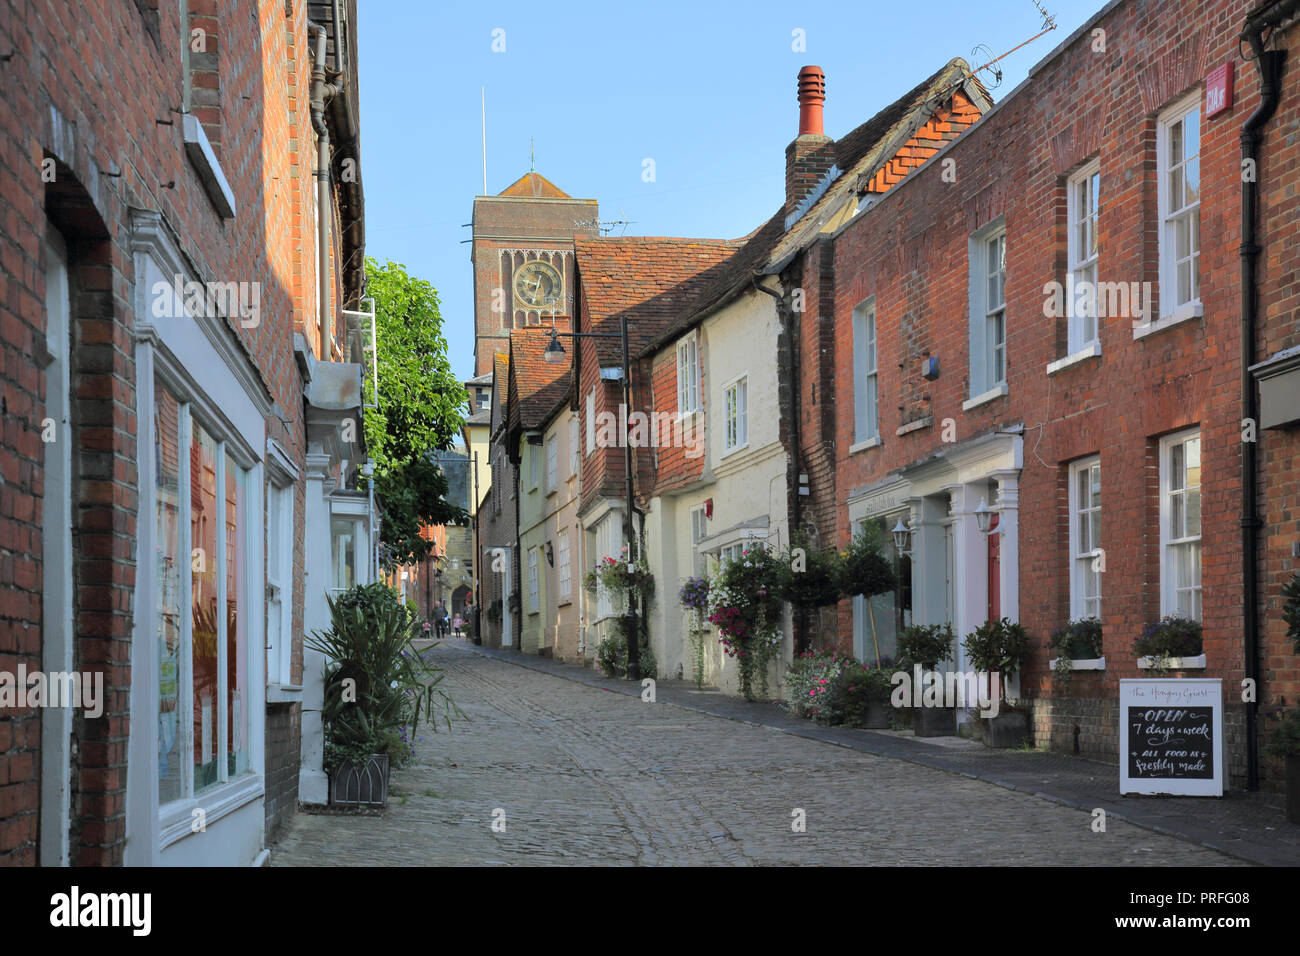 lombard street a cobbled lane in petworth west sussex - Stock Image